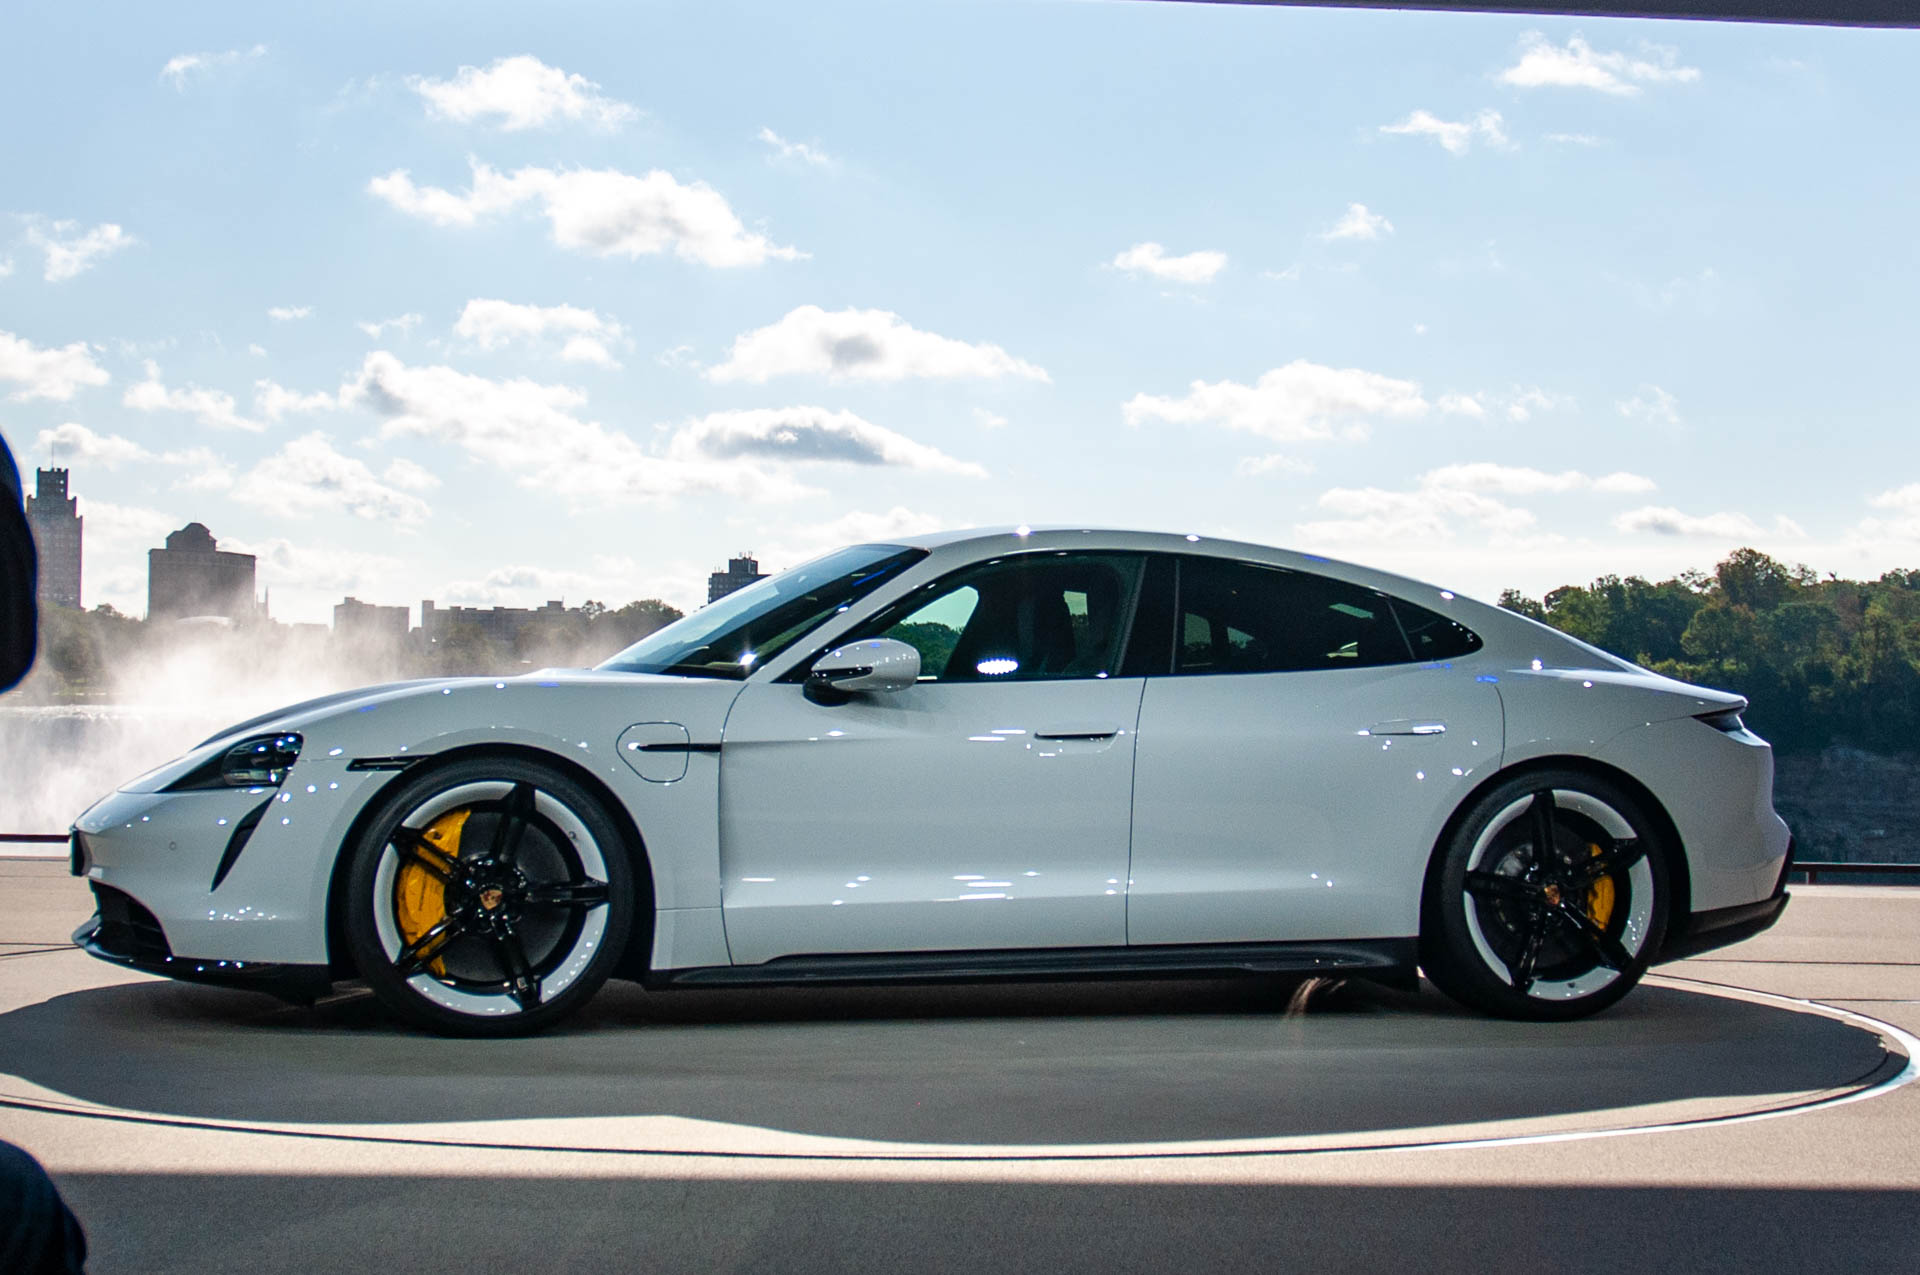 2020 Porsche Taycan Turbo Vs Turbo S Electric Car Battery Tech Specs And Pricing